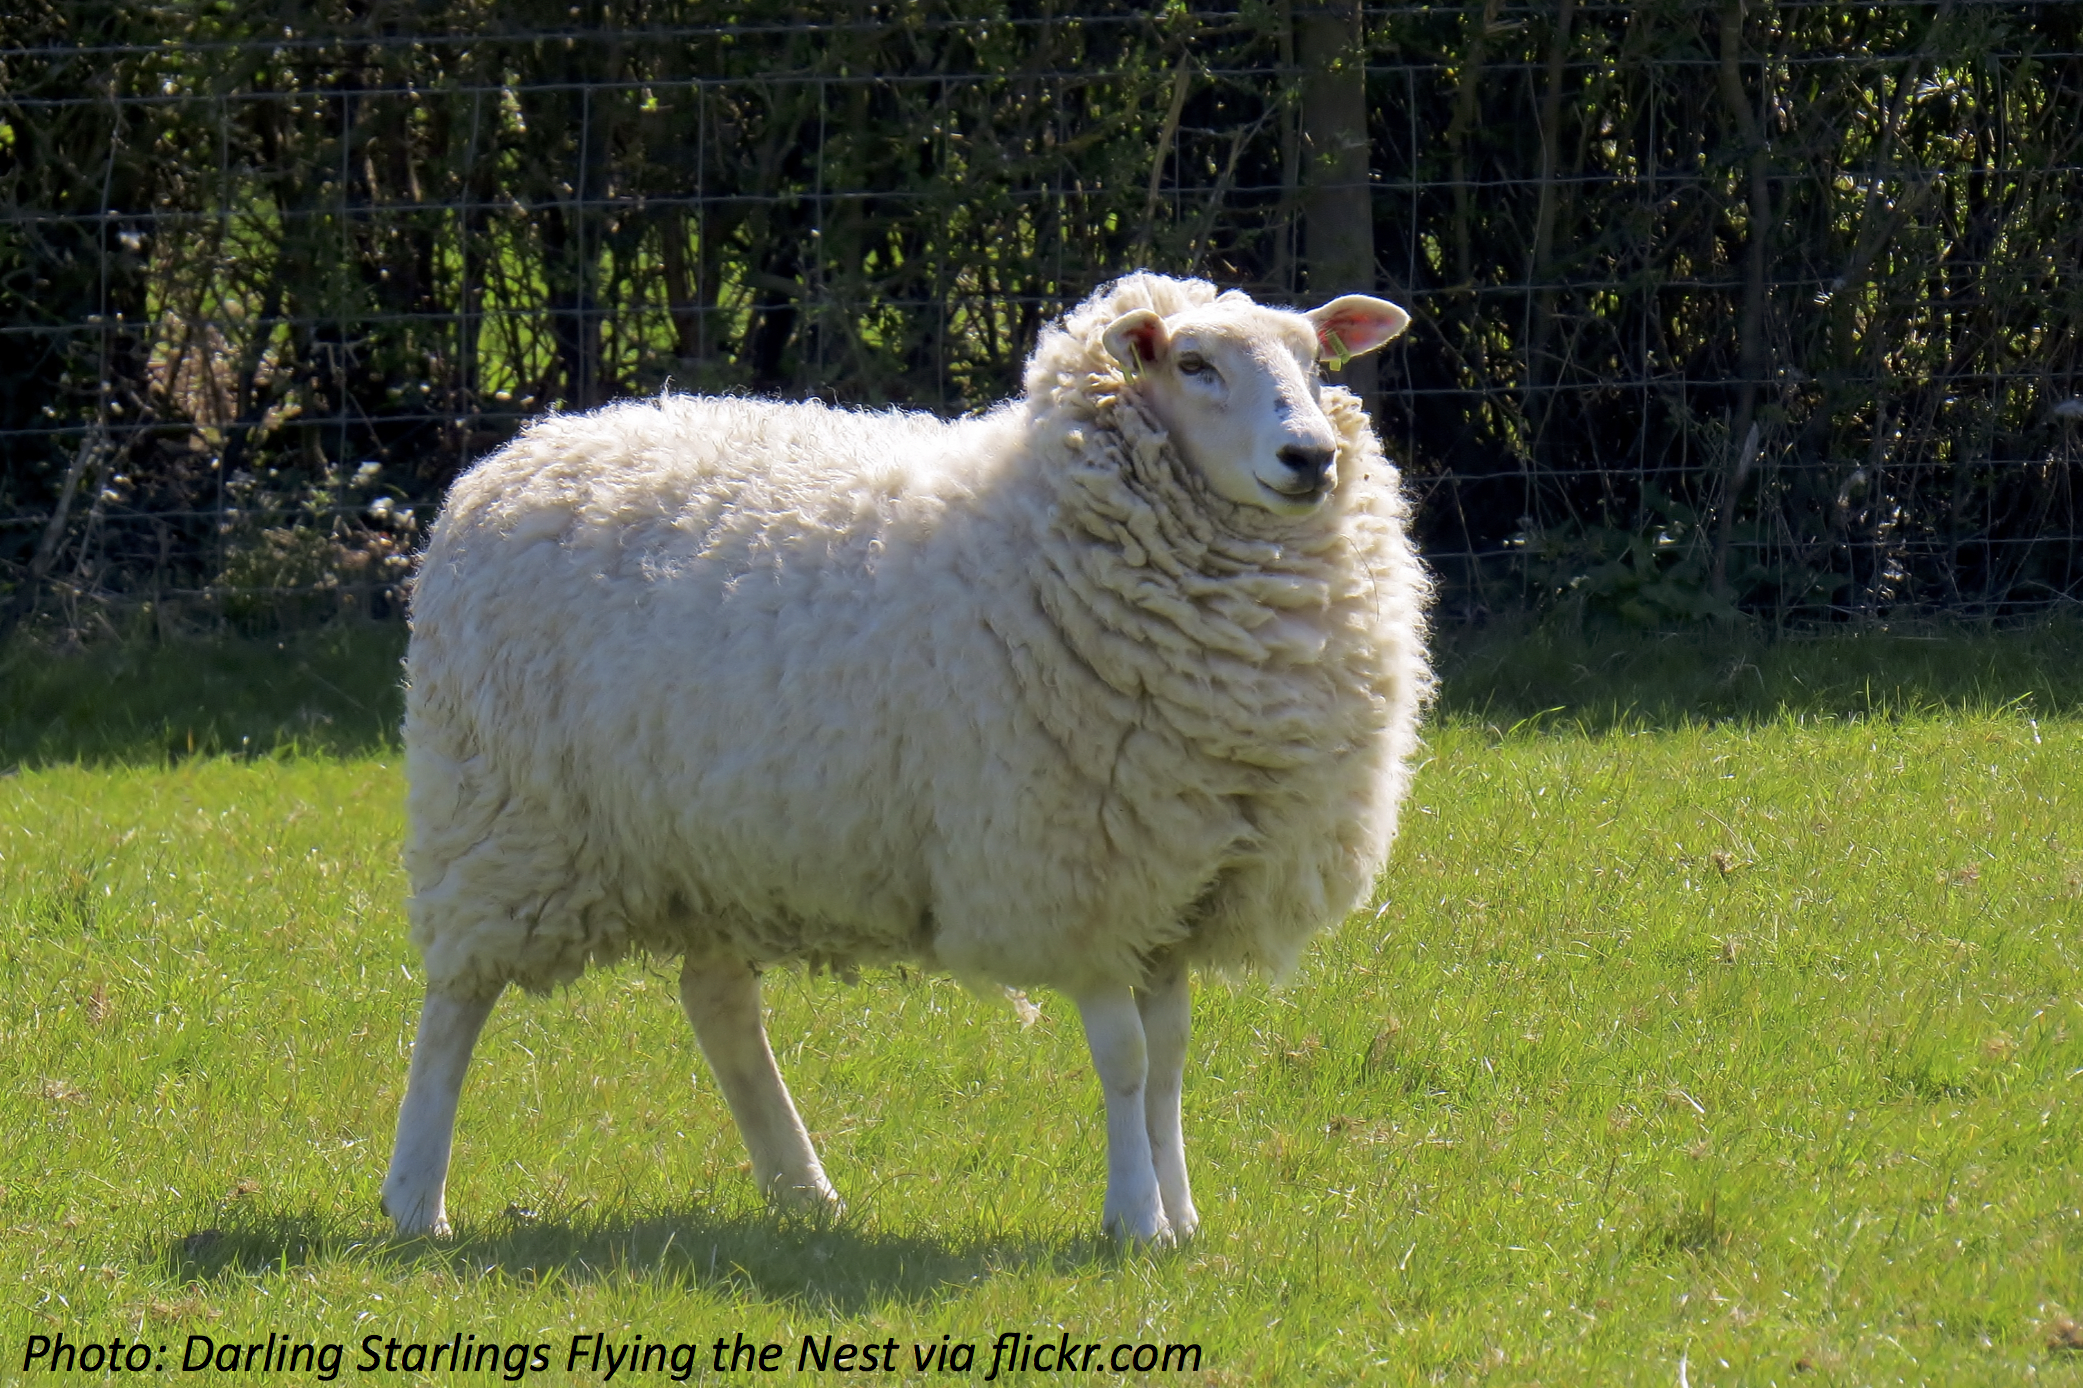 How Many Sheep Are You Wearing?